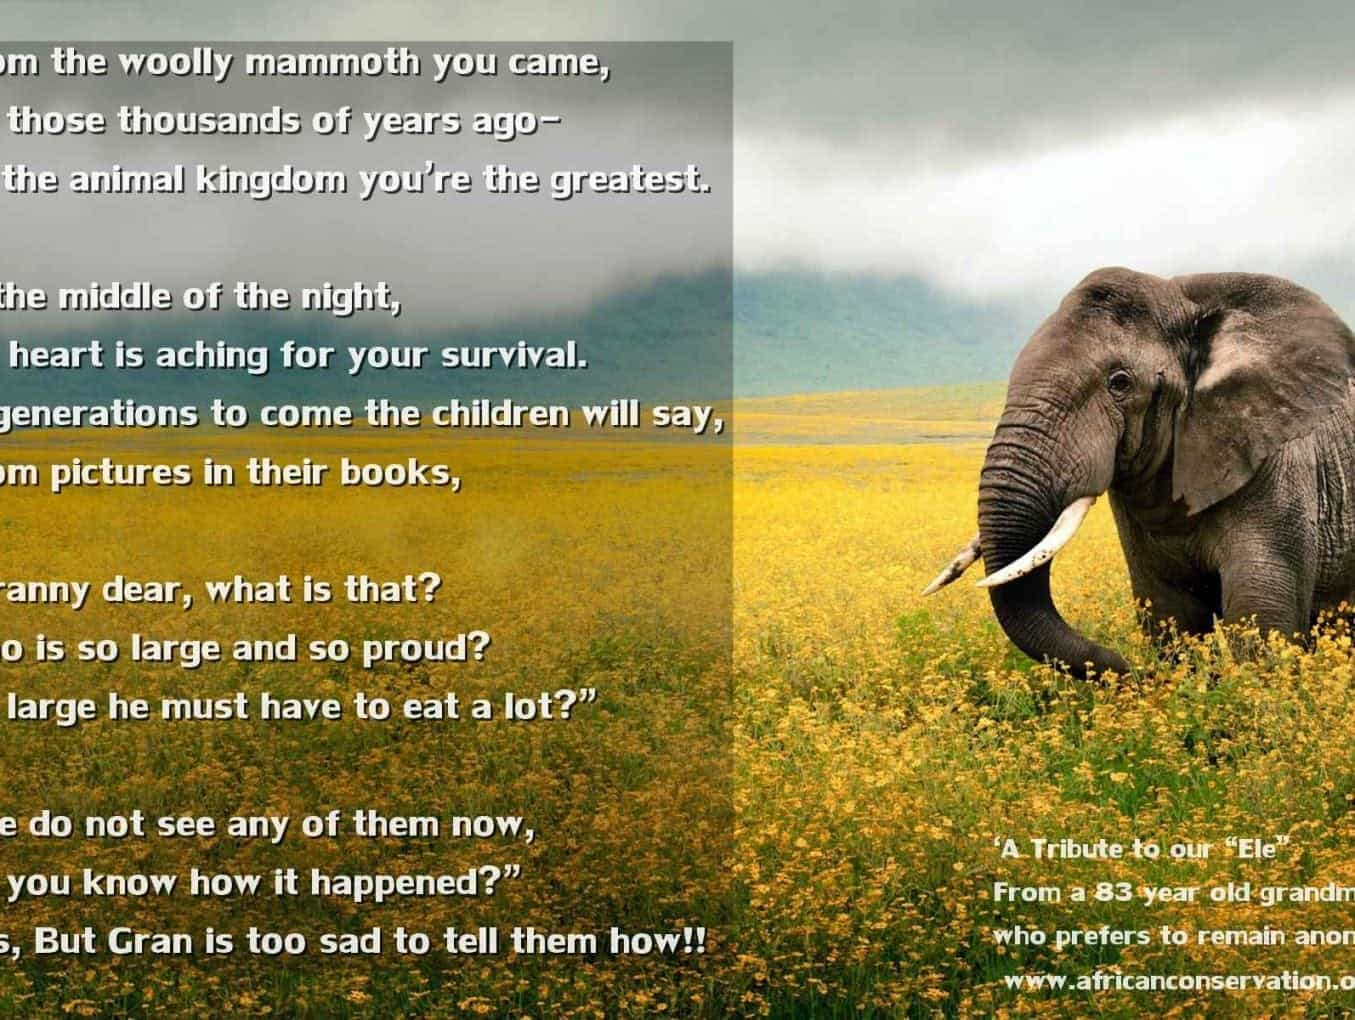 "'A Tribute to our ""Ele"" with a mug of coffee at my elbow' - Elephant Poem"